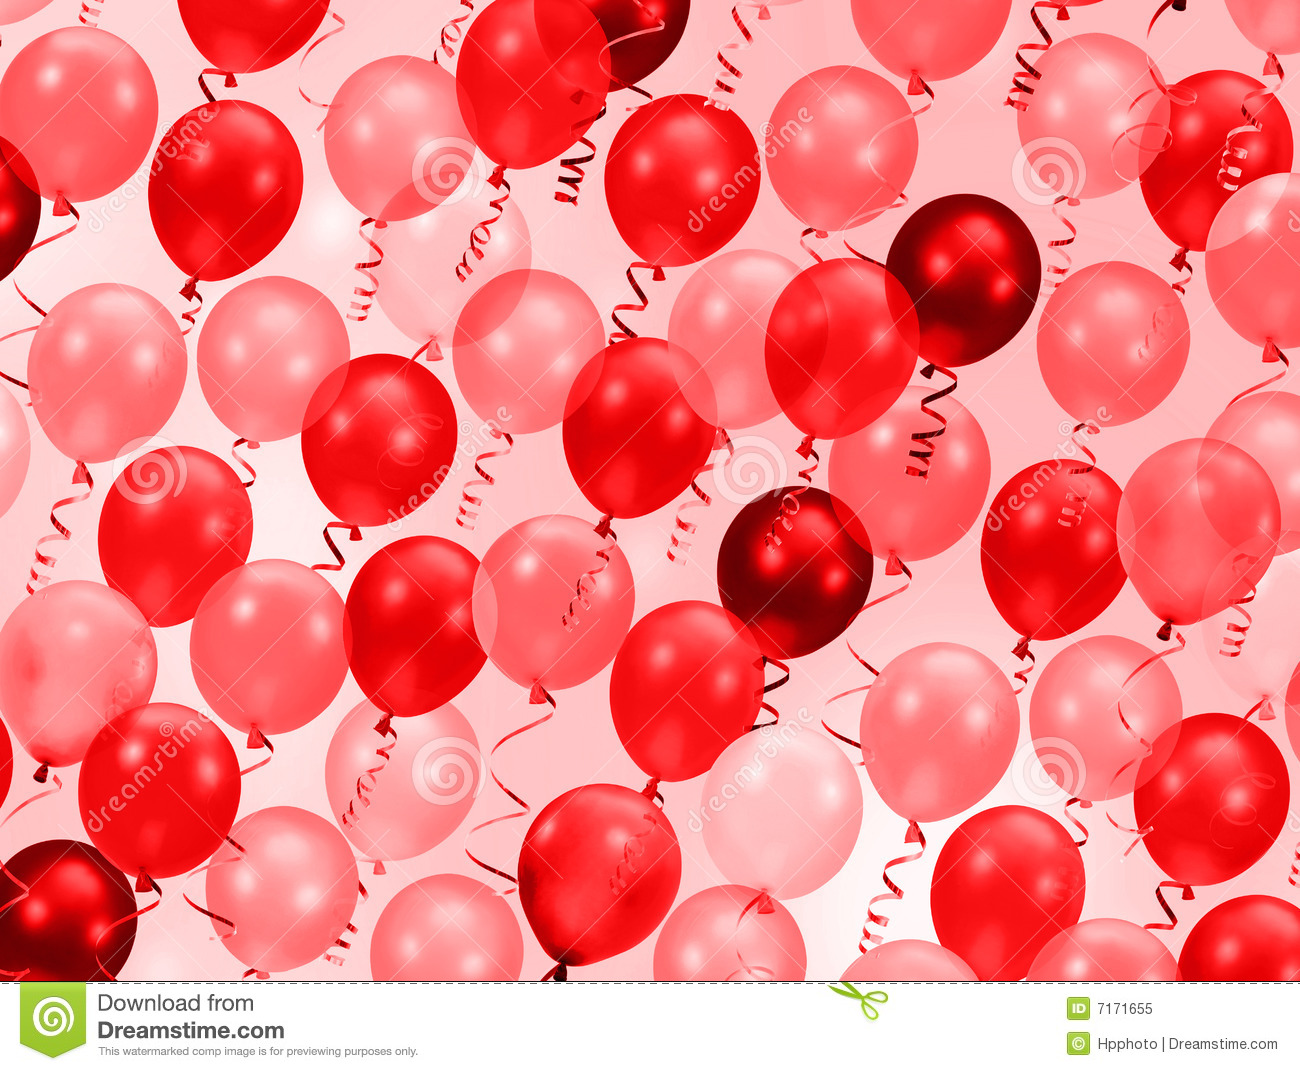 Birthday Balloon Clipart Images